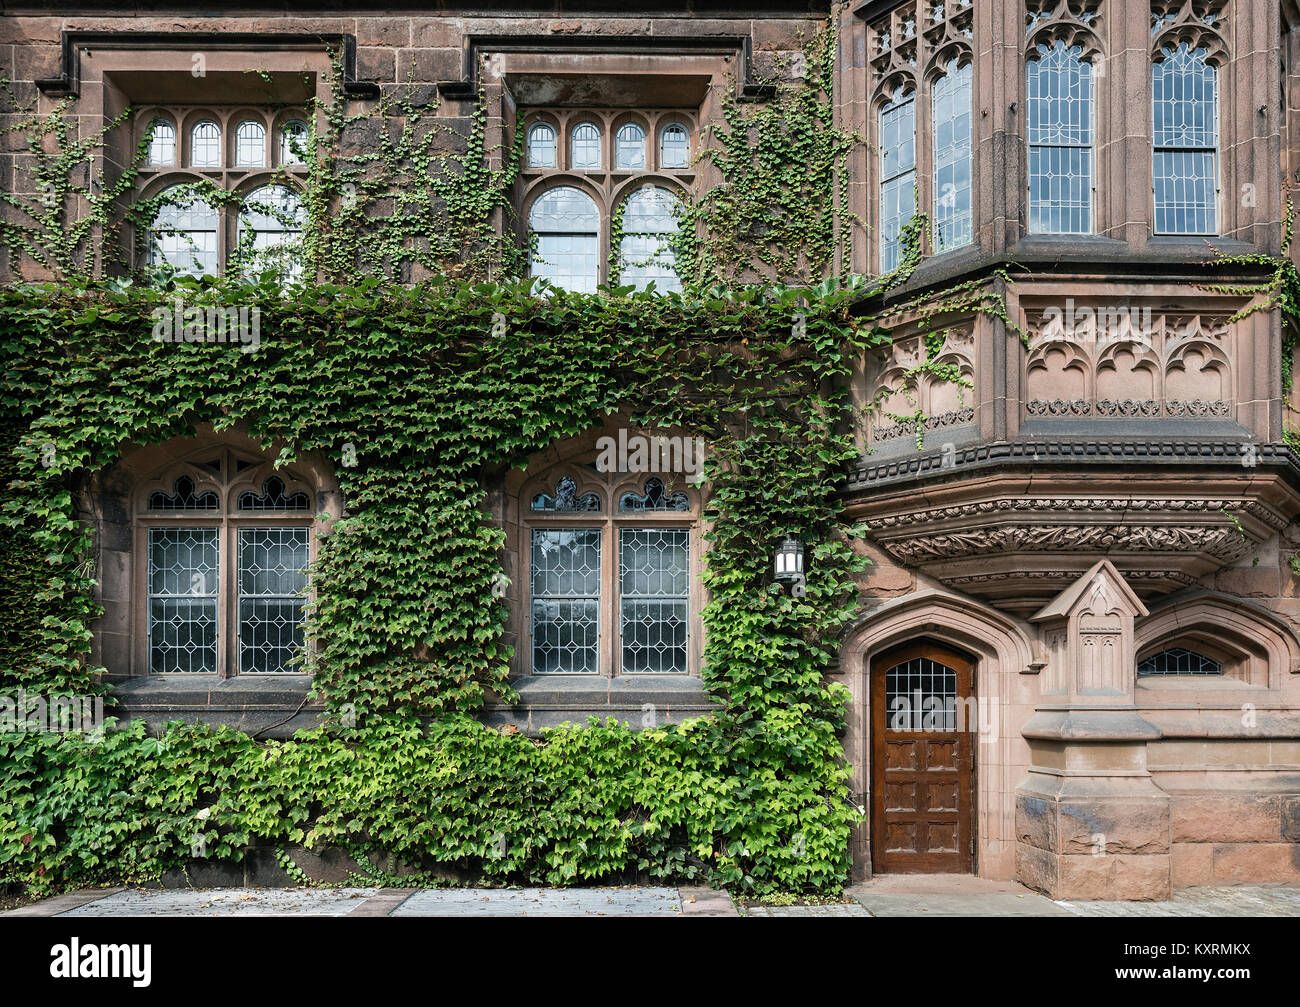 Ivy League Architecture, Princeton University, New Jersey, USA.   Stock  Image